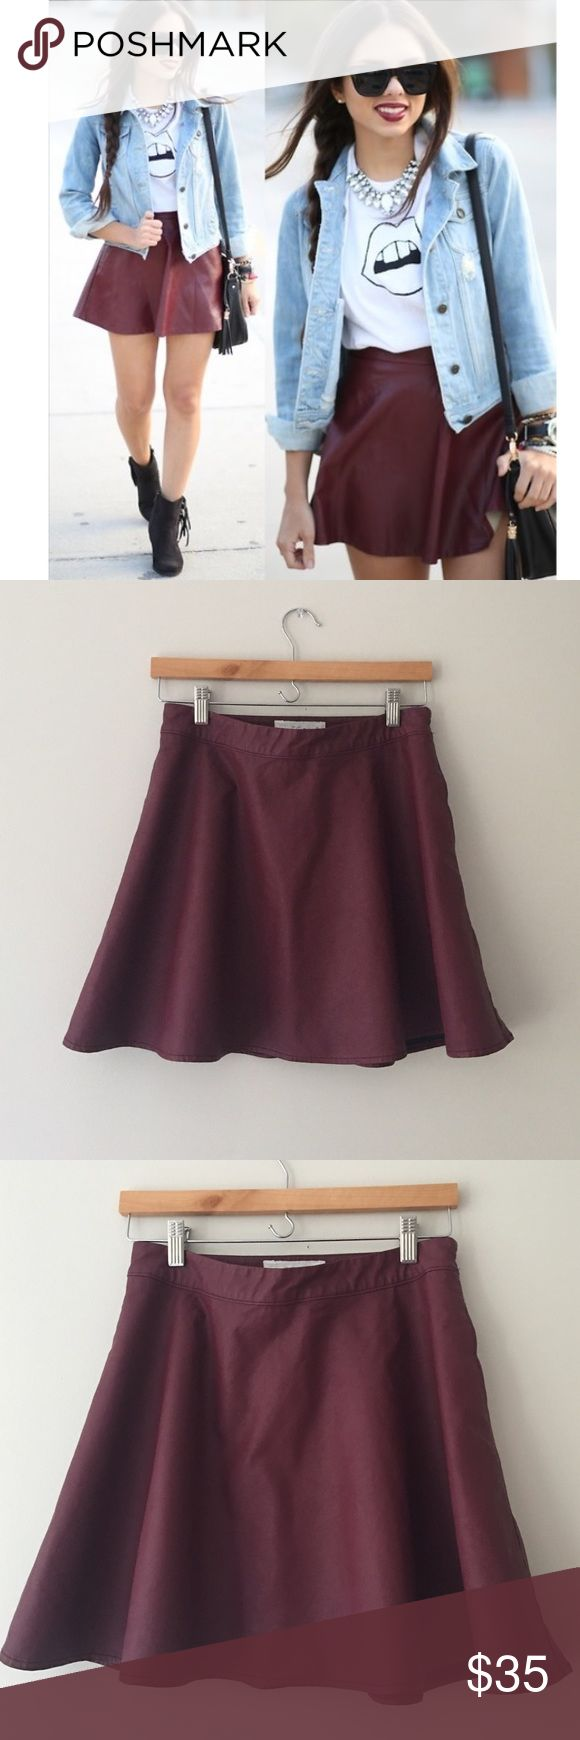 Abercrombie & Fitch Maroon Leather Skater Skirt Marion pleather skater skirt by Abercrombie & Fitch. Hidden side pockets. Side zip with hook and eye closure. Size Medium. Like New!! Abercrombie & Fitch Skirts Circle & Skater